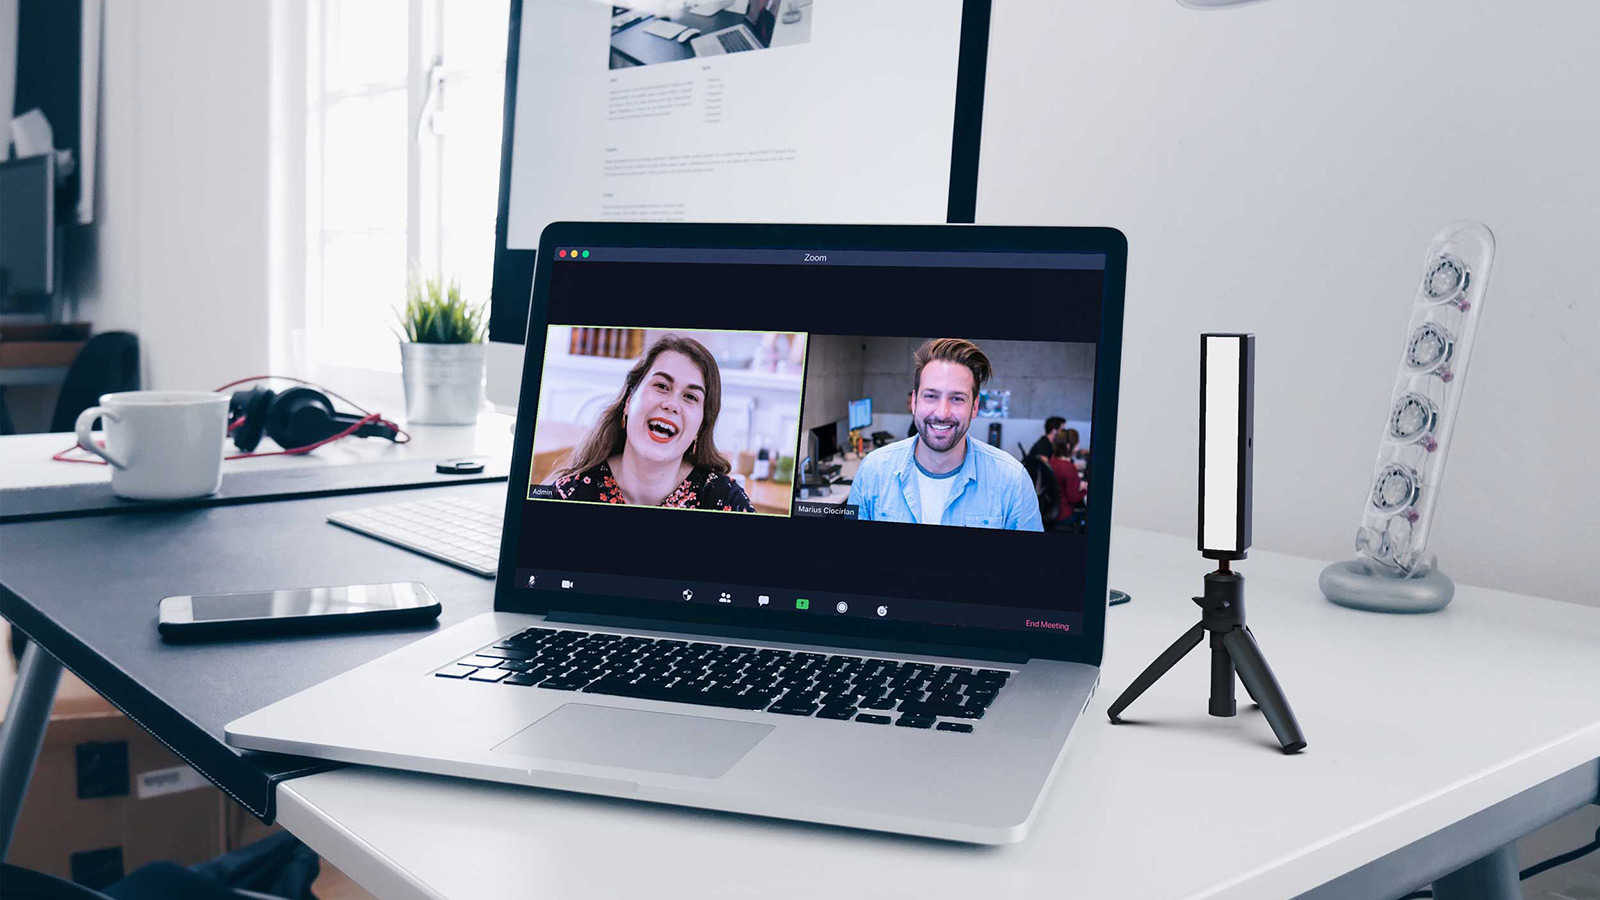 GLP's Streamer Enhances Videoconferencing Experience with Portable LED Light